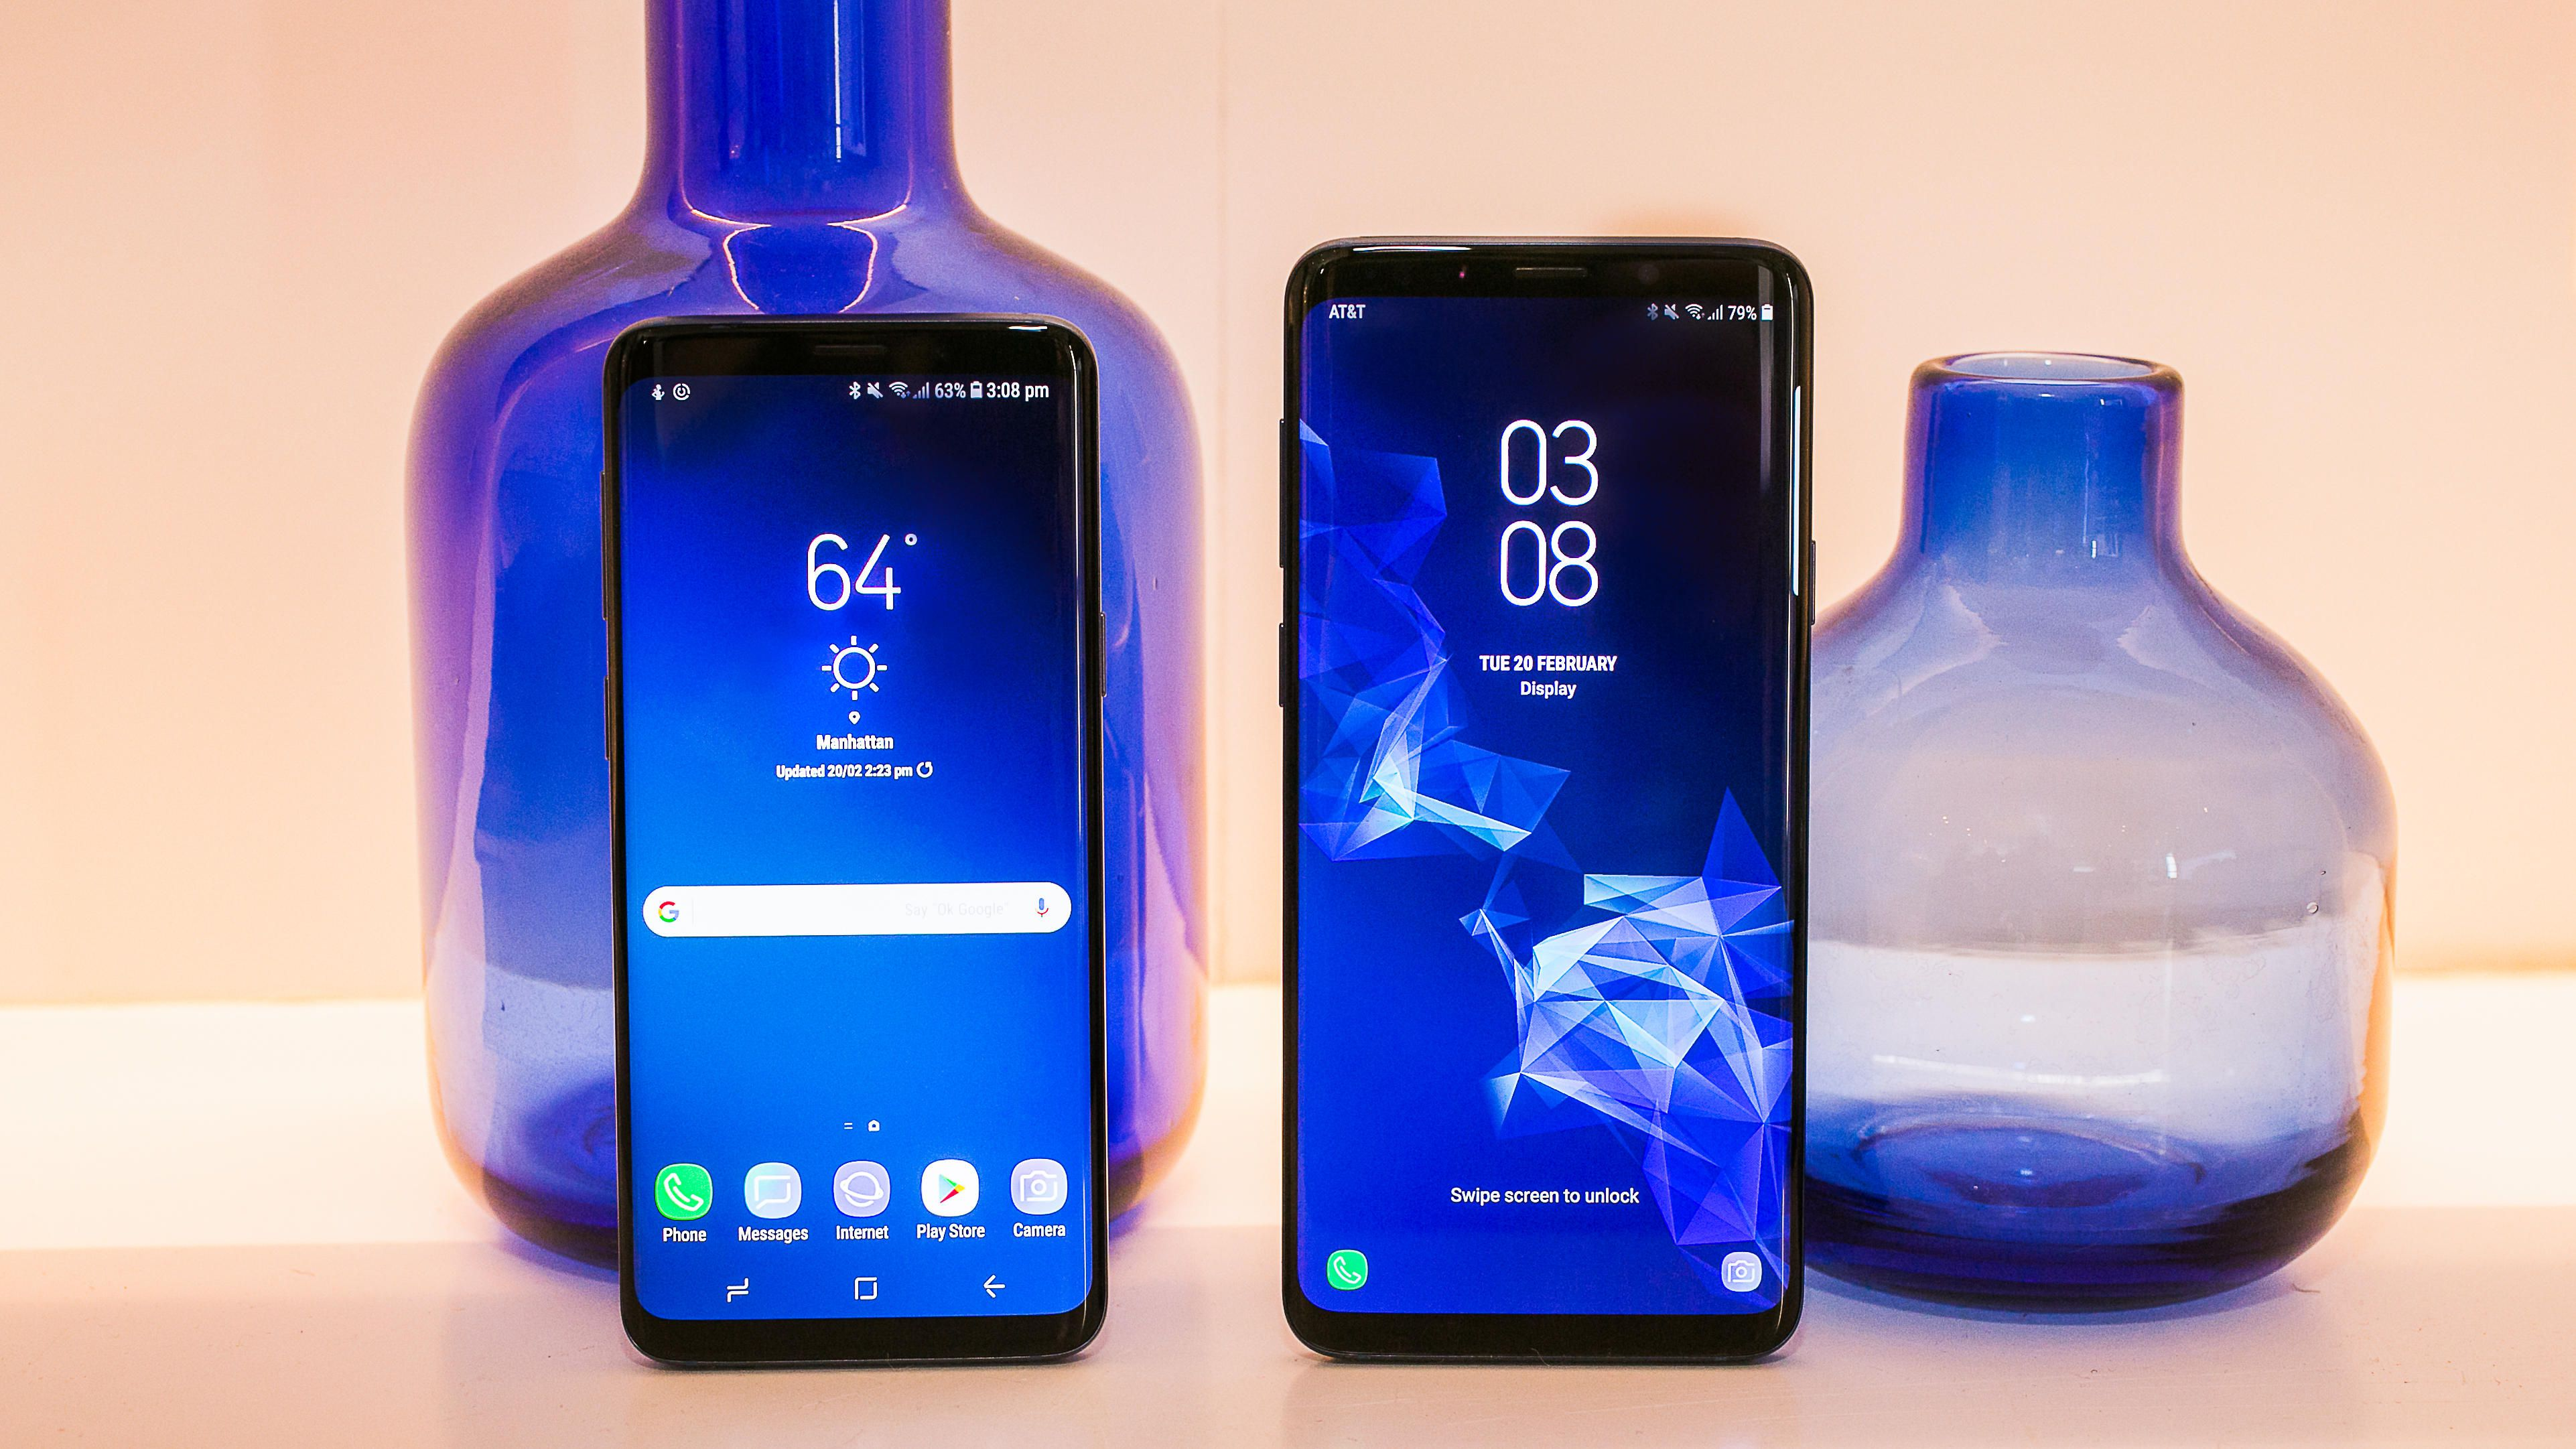 S9 Plus Hintergrund Download: How To Boot Into Samsung Galaxy S9 Download Mode